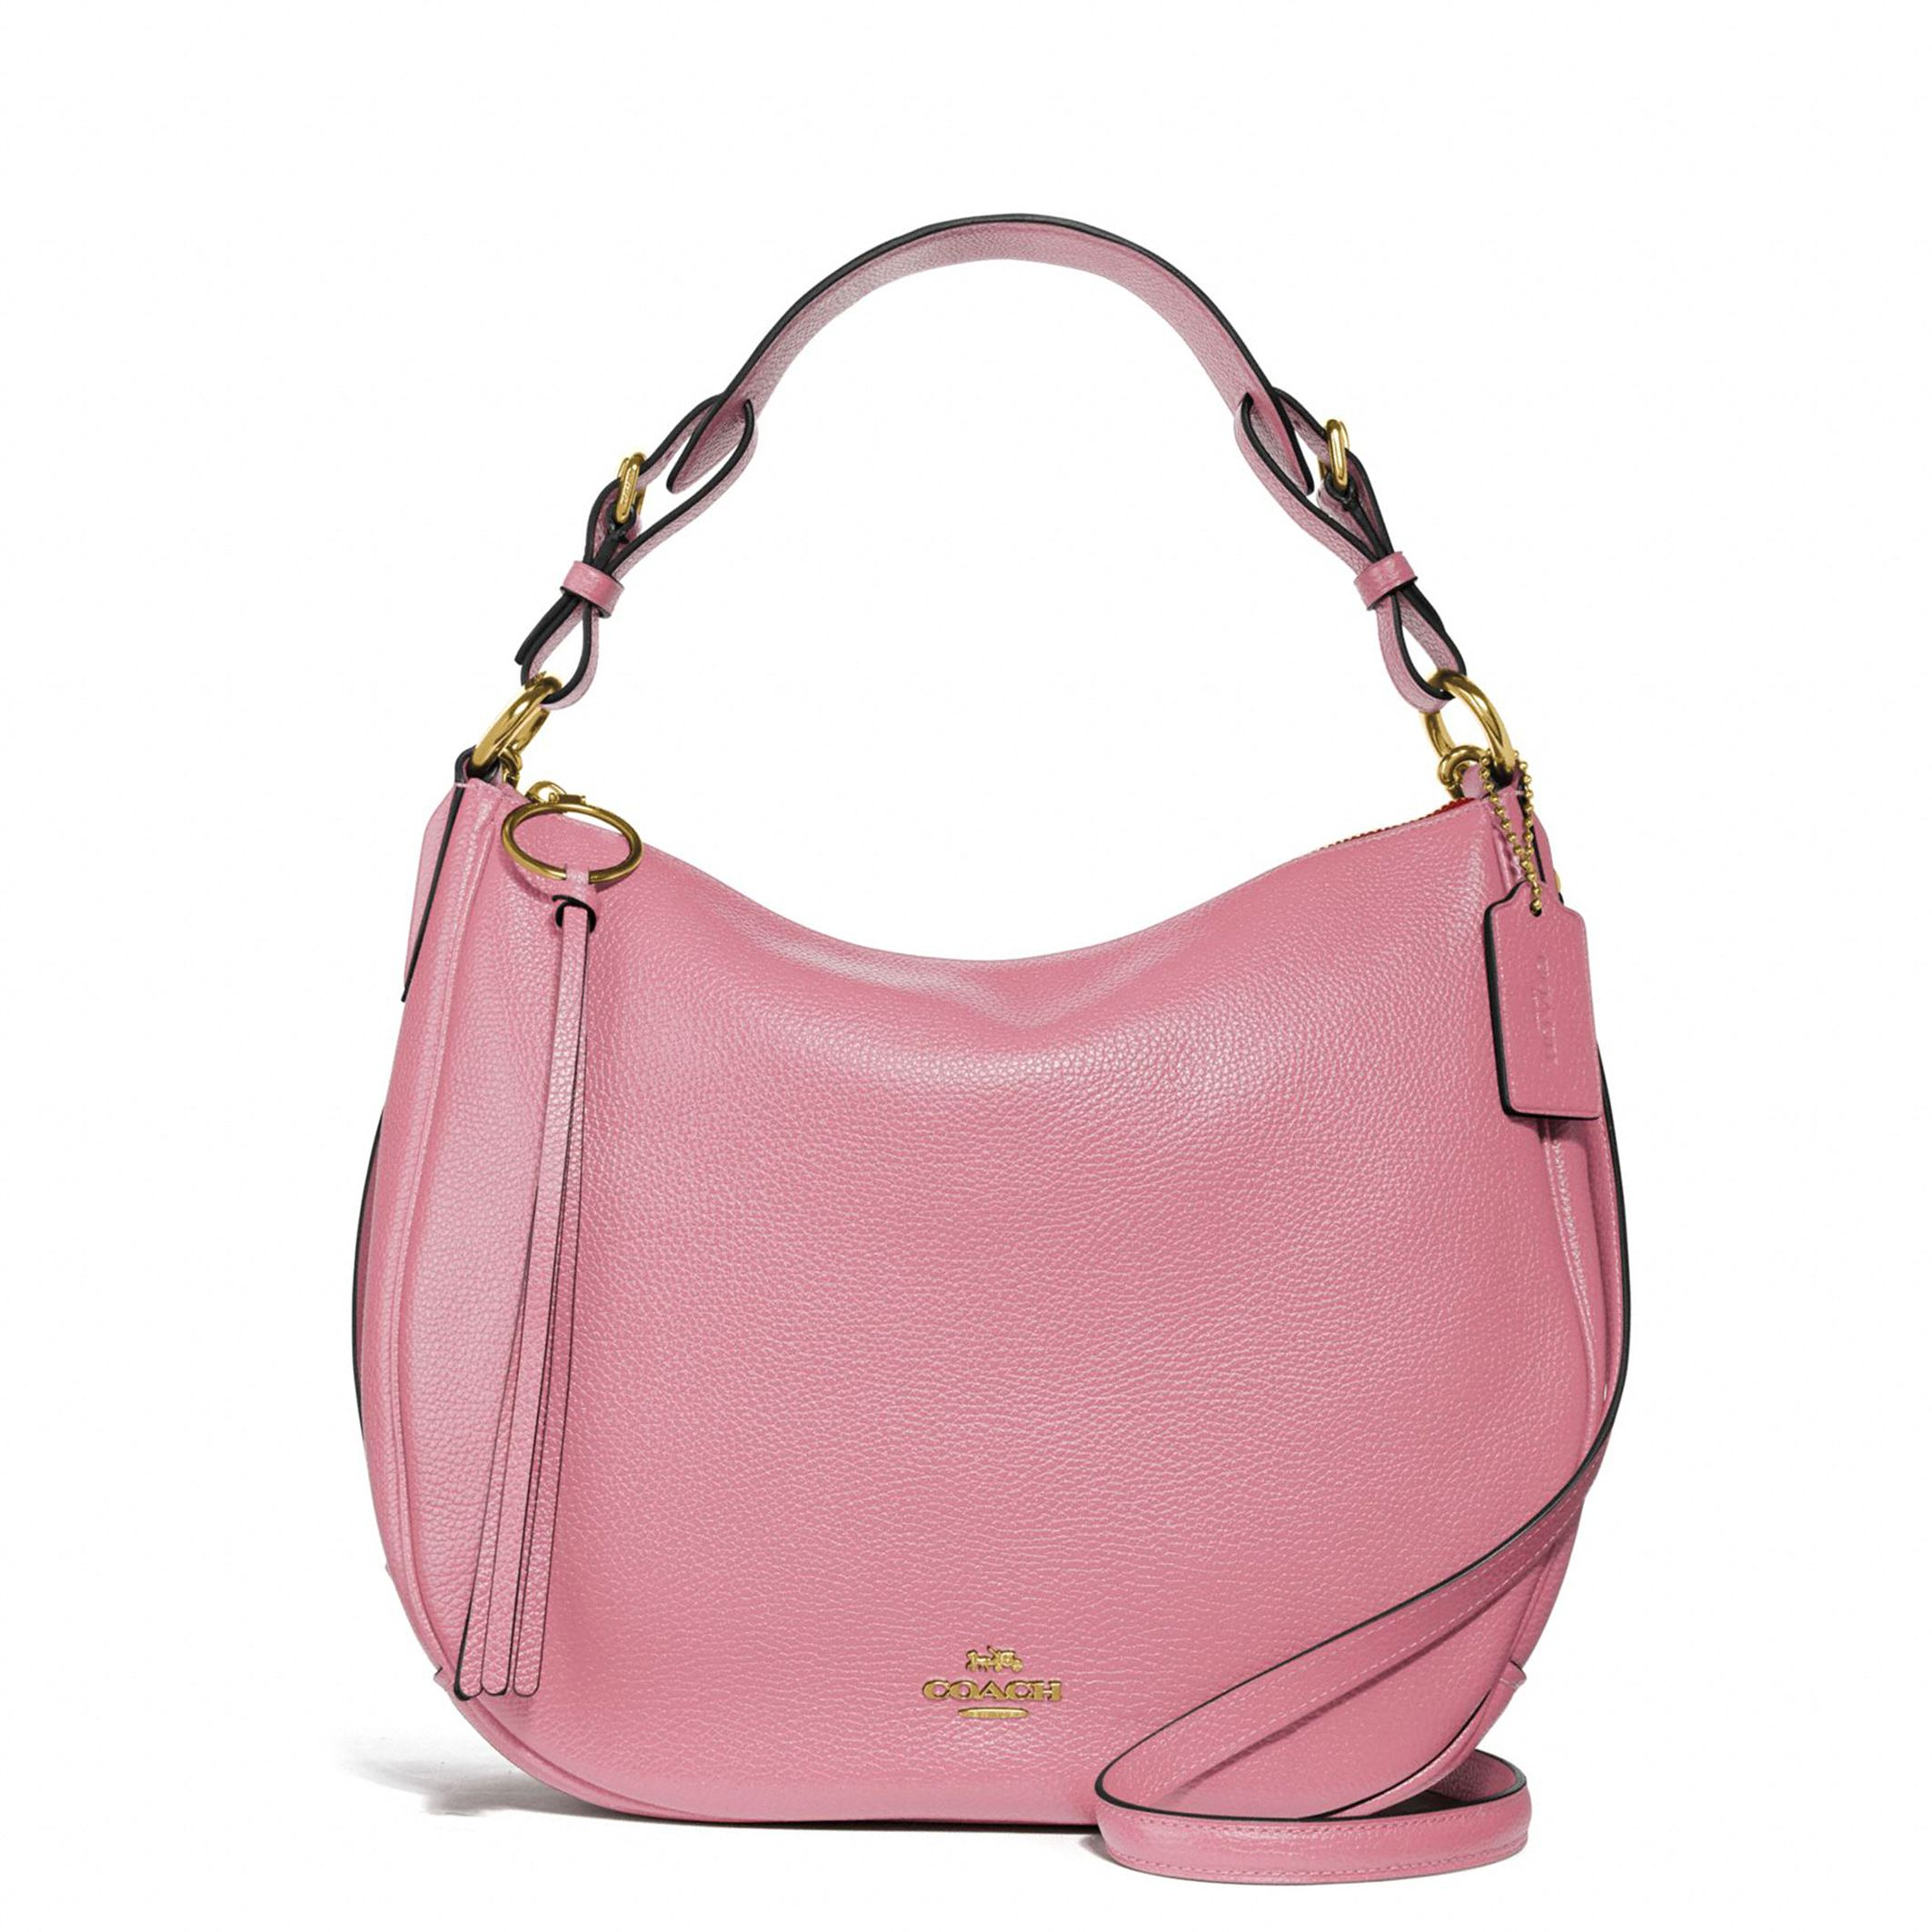 52fb590facbb Details about Coach Women s Pink Hobo Shoulder Bag Zip Leather Removable  Strap Pockets